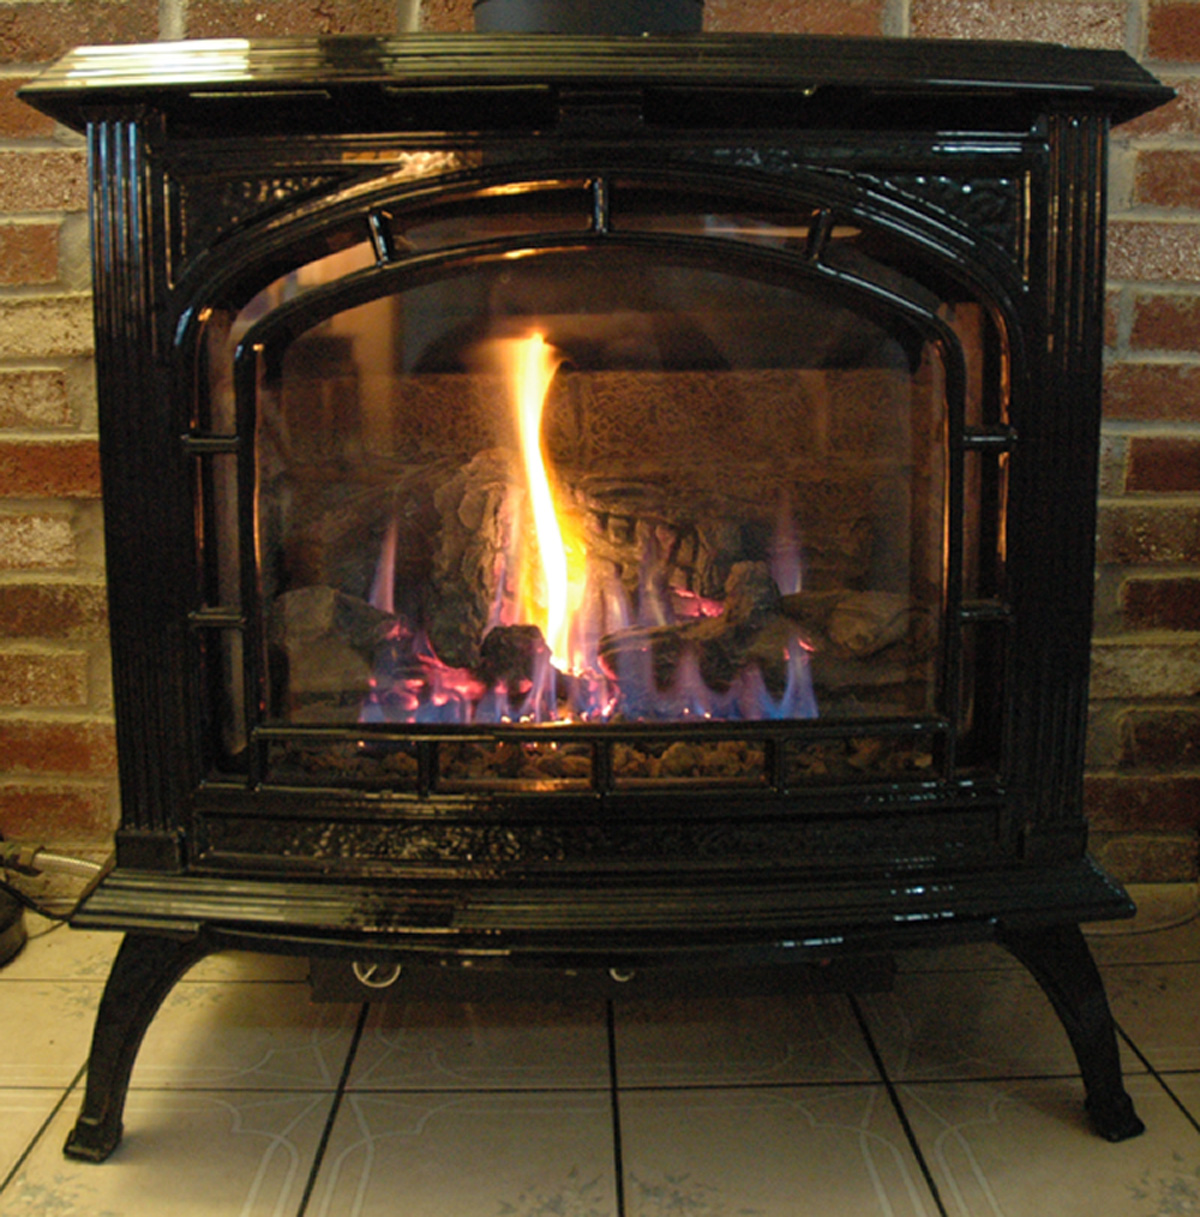 Propane Fireplace Cleaning Gas Direct Vent Space Heaters Fireplaces And Wall Furnaces